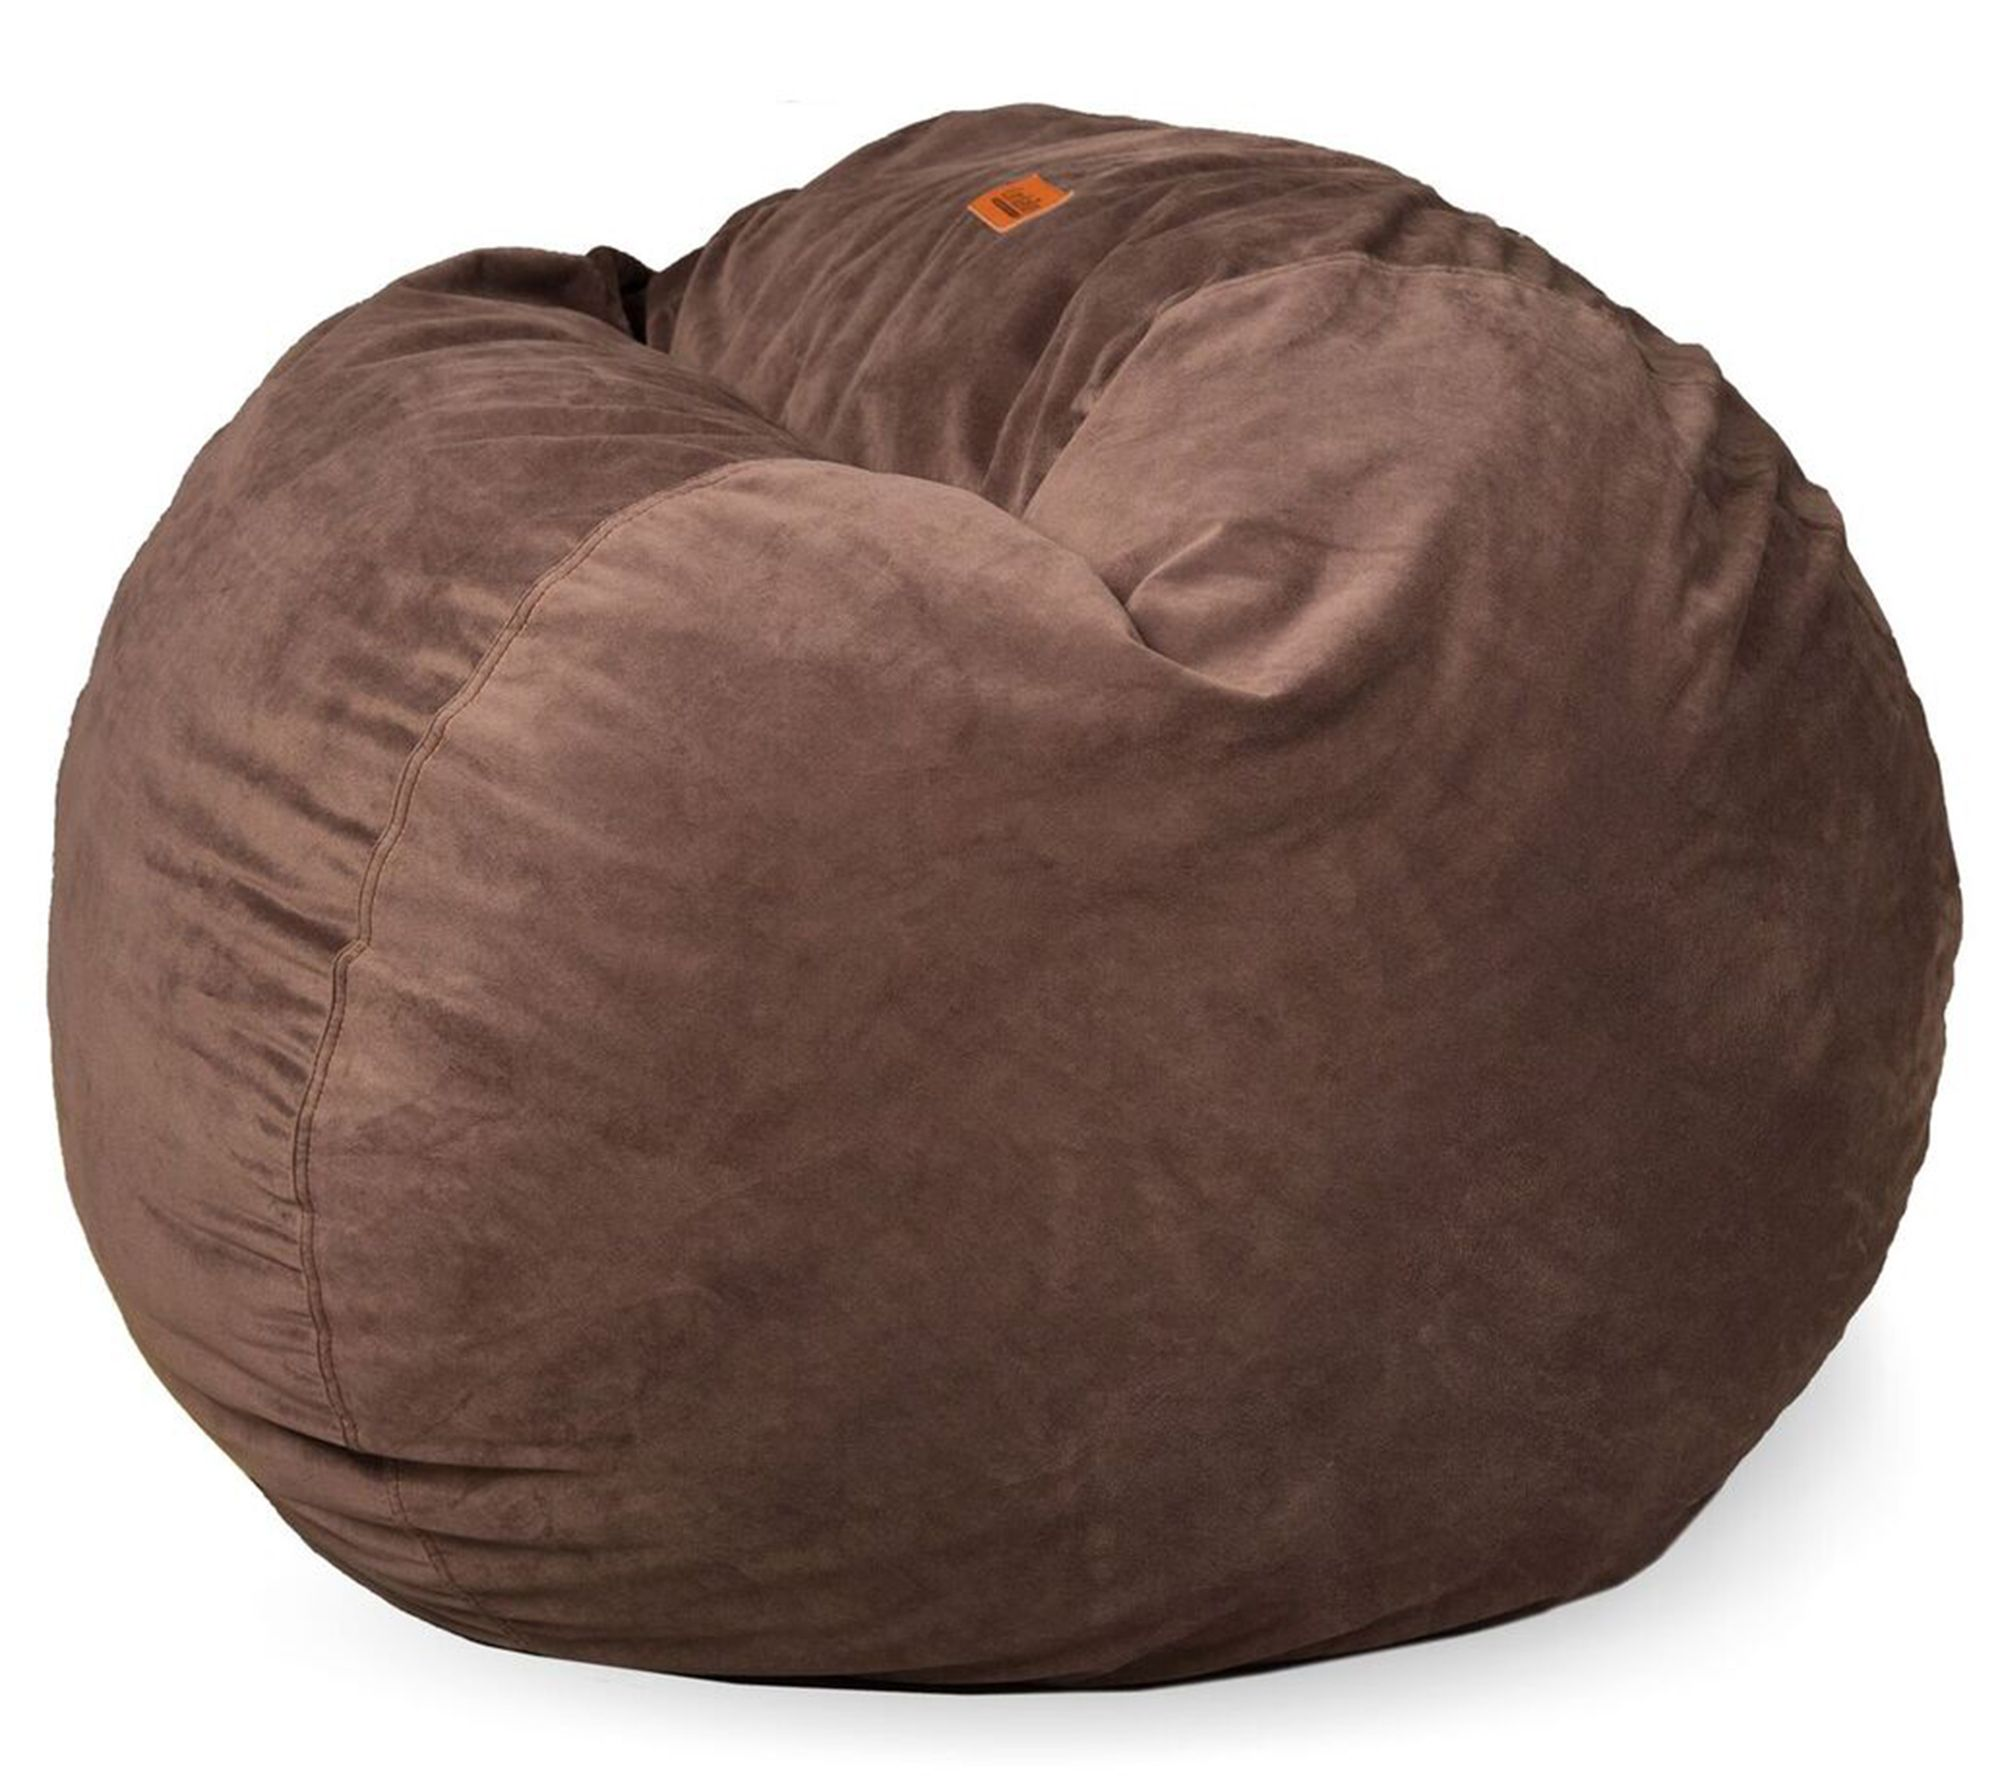 Peachy As Is Cordaroys Full Convertible Bean Bag Chair By Lori Greiner Qvc Com Andrewgaddart Wooden Chair Designs For Living Room Andrewgaddartcom